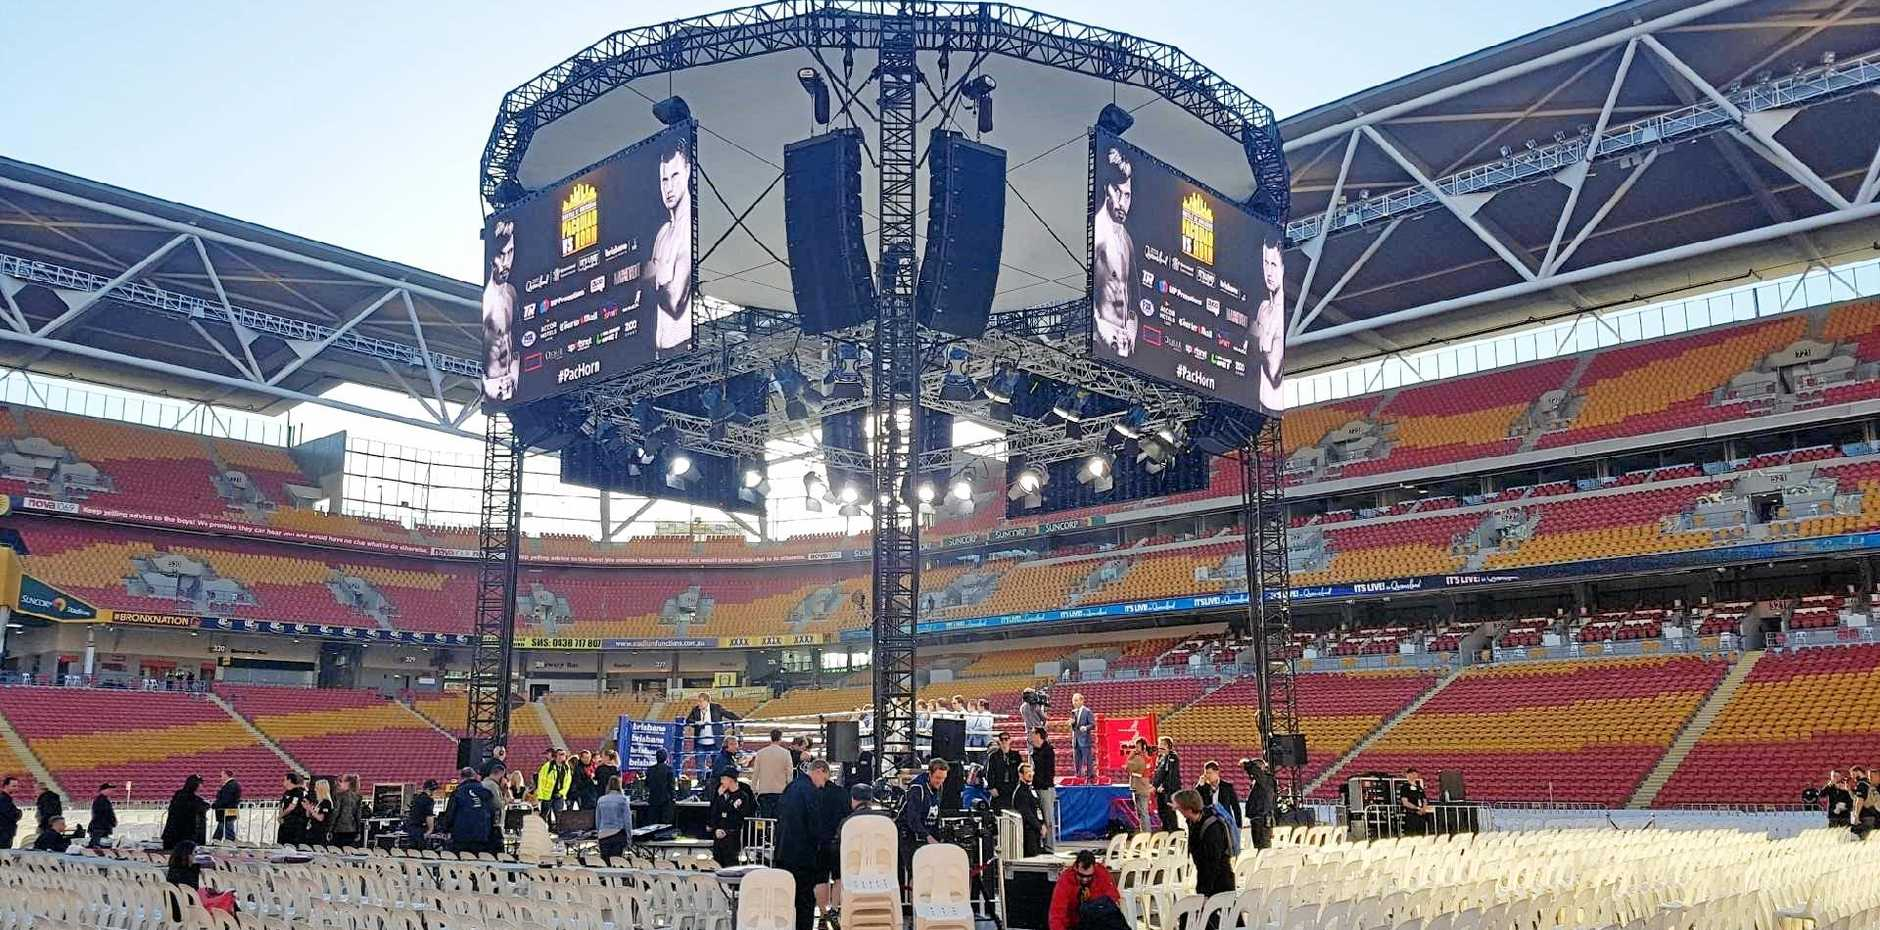 The Shamrock Boxing Club's ring was centre stage at the Pacqiao-Horn world title fight at Suncorp on Sunday.